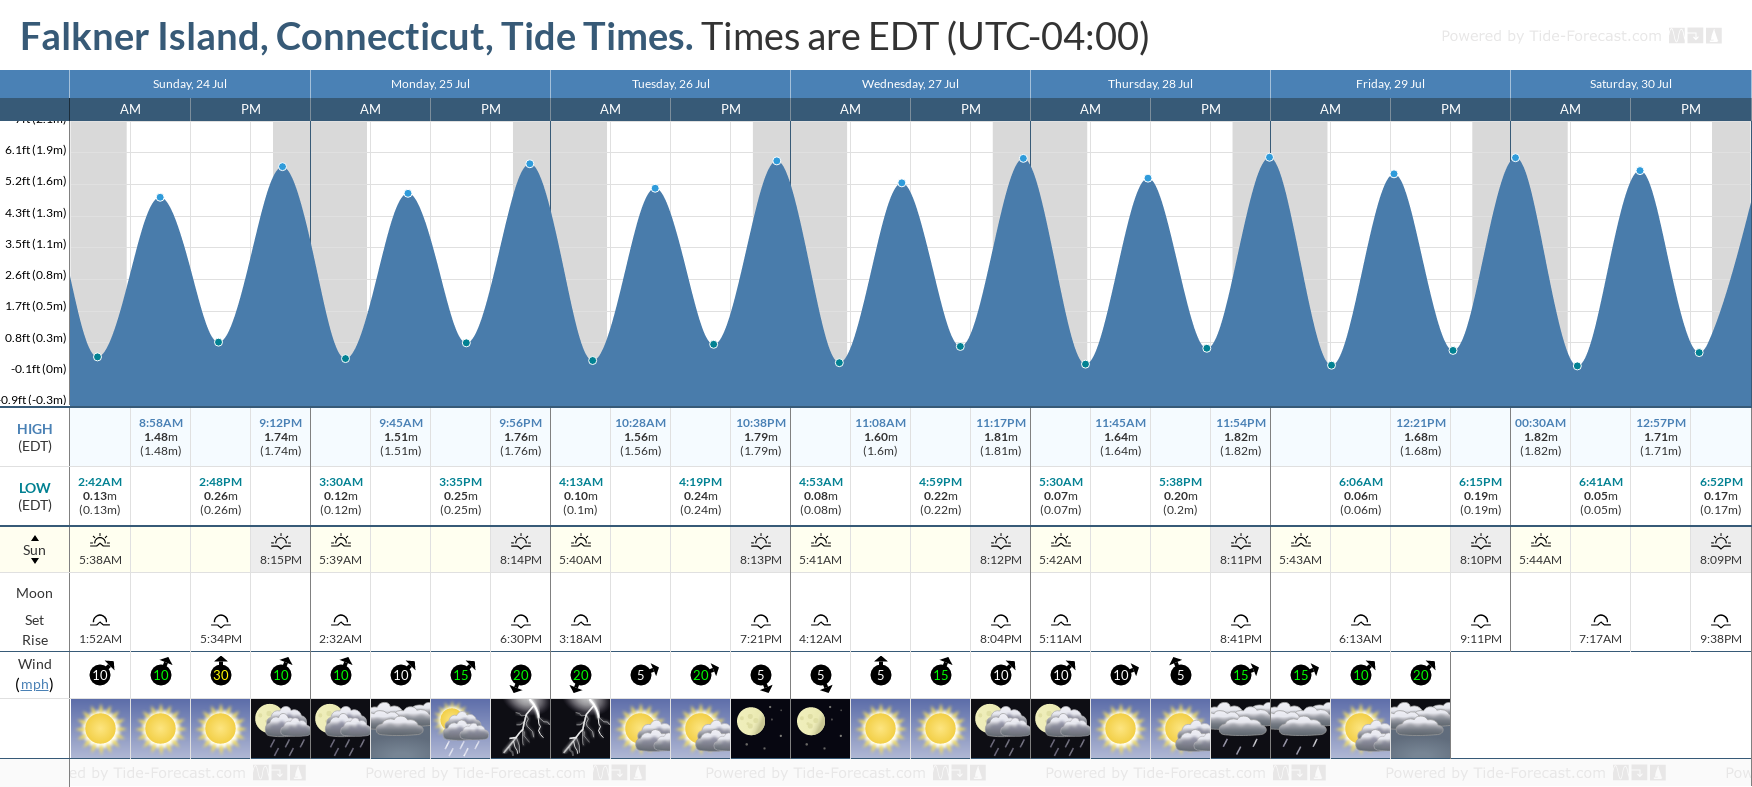 Falkner Island, Connecticut Tide Chart including high and low tide tide times for the next 7 days